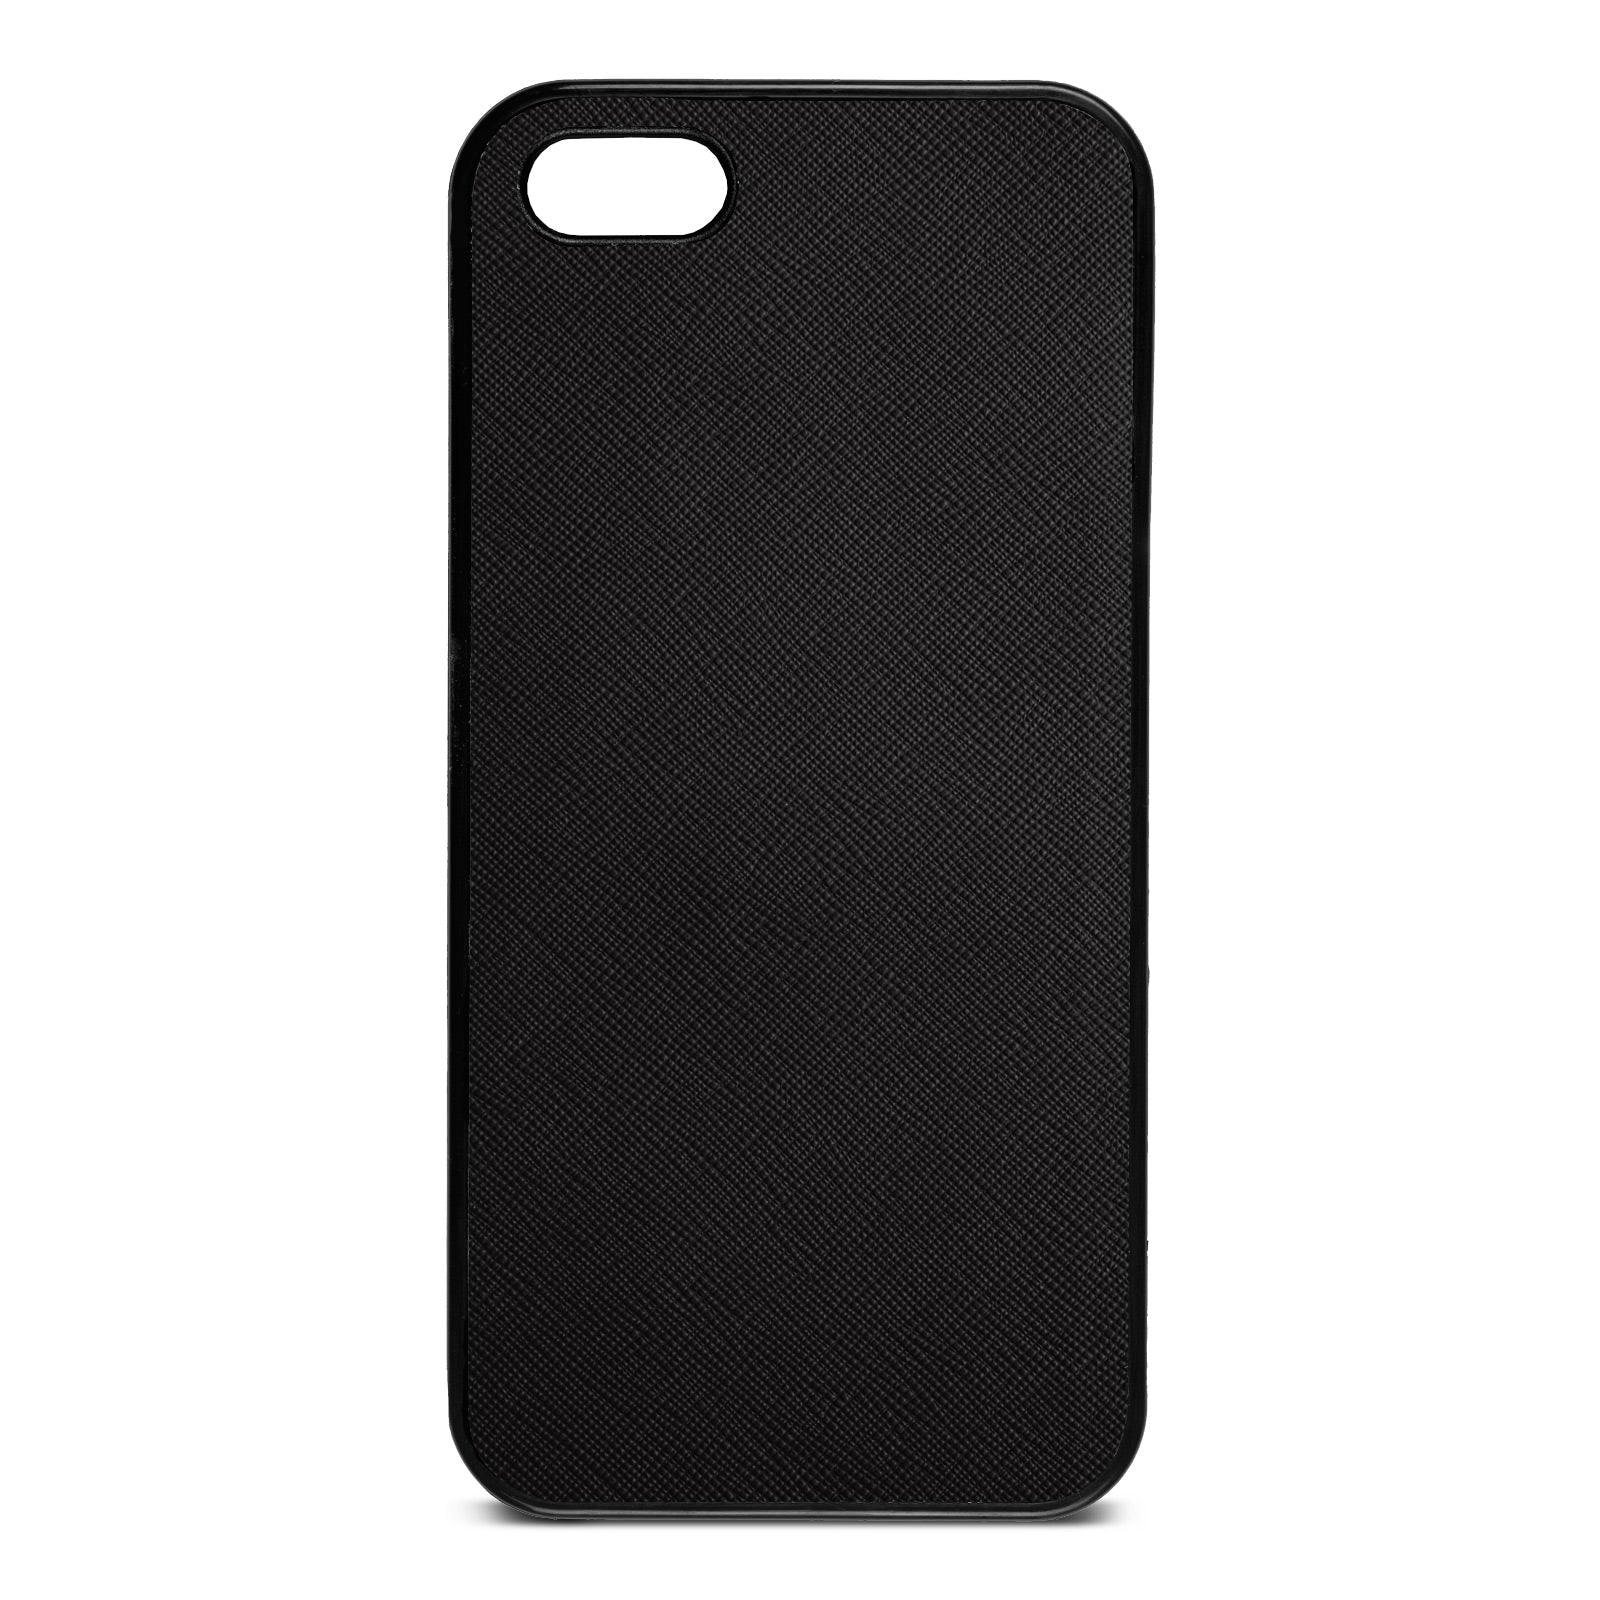 Blank iPhone 5 Drop Shadow Black Leather Case